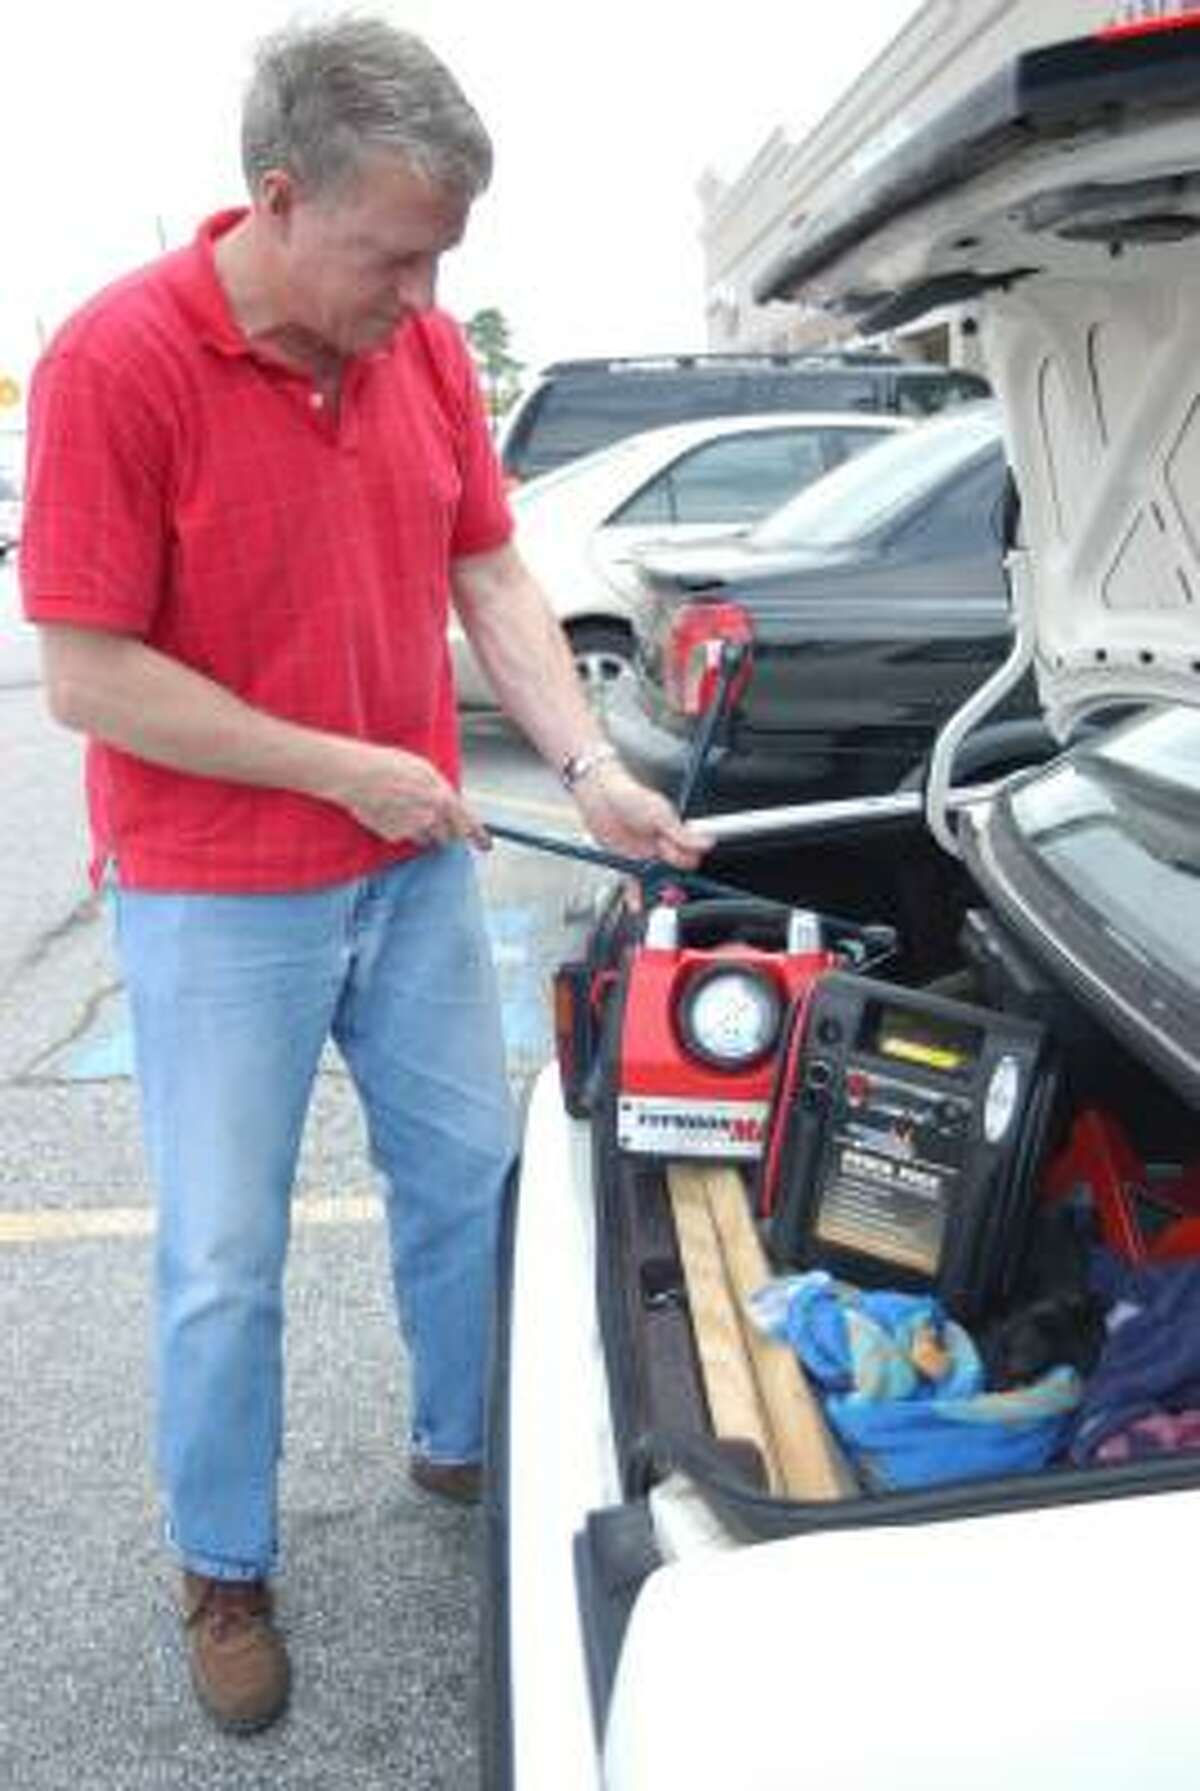 Walt Brinker shows a few of the tools he uses to help stranded motorists. He has been assisting stranded motorists for about six years.